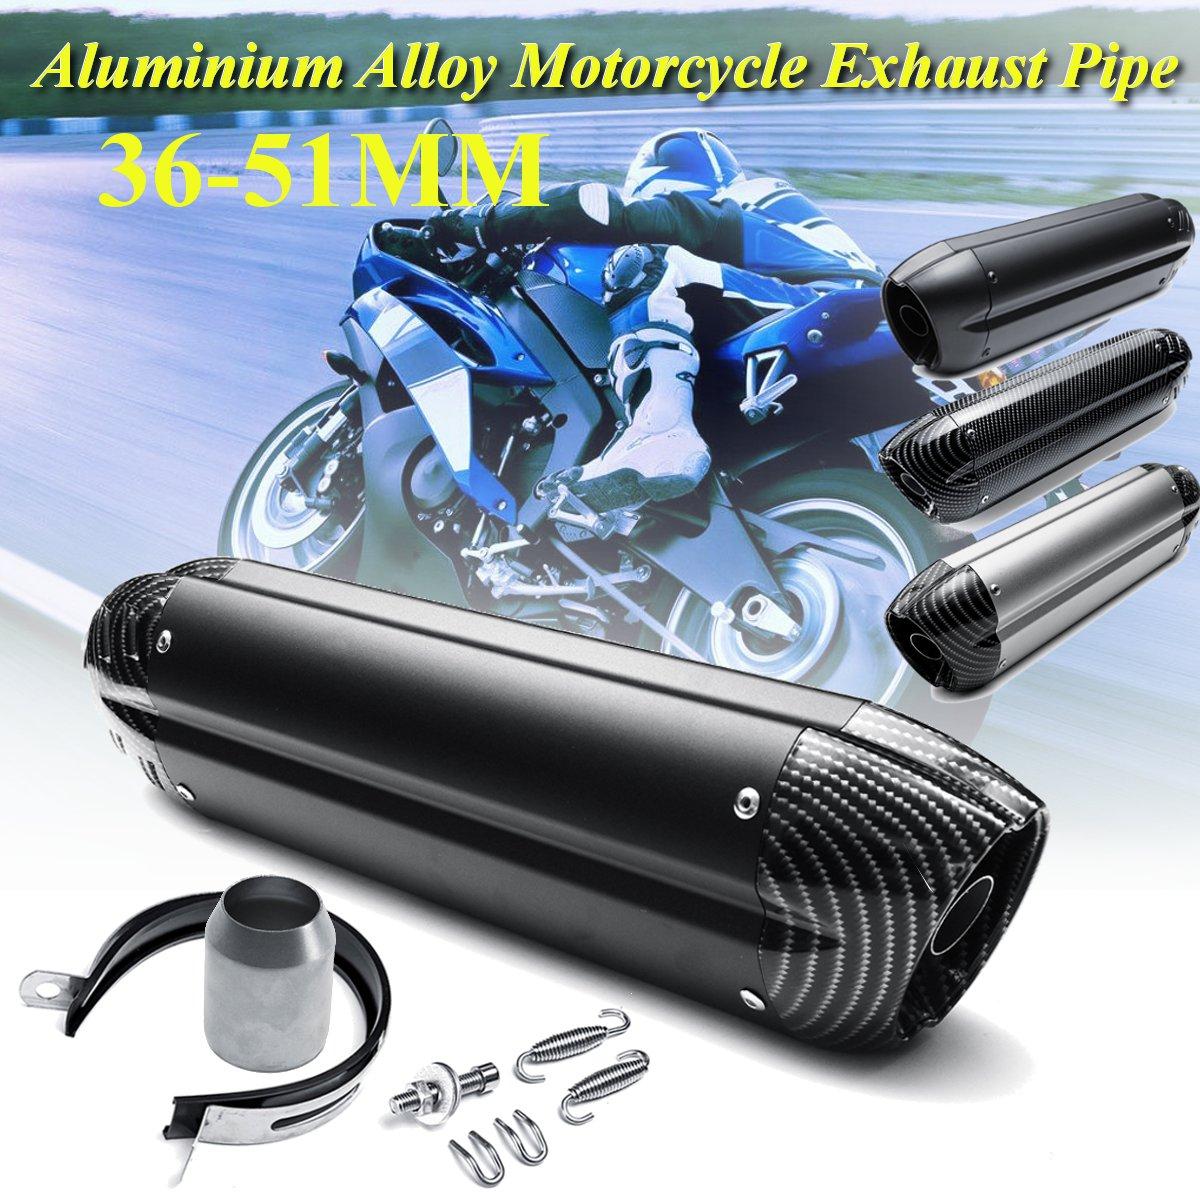 36-51mm Universal 470mm Aluminium Alloy Motorcycle Exhaust Muffler Tip Replacement  for Honda for Yamaha for Kawasaki for Suzuki36-51mm Universal 470mm Aluminium Alloy Motorcycle Exhaust Muffler Tip Replacement  for Honda for Yamaha for Kawasaki for Suzuki